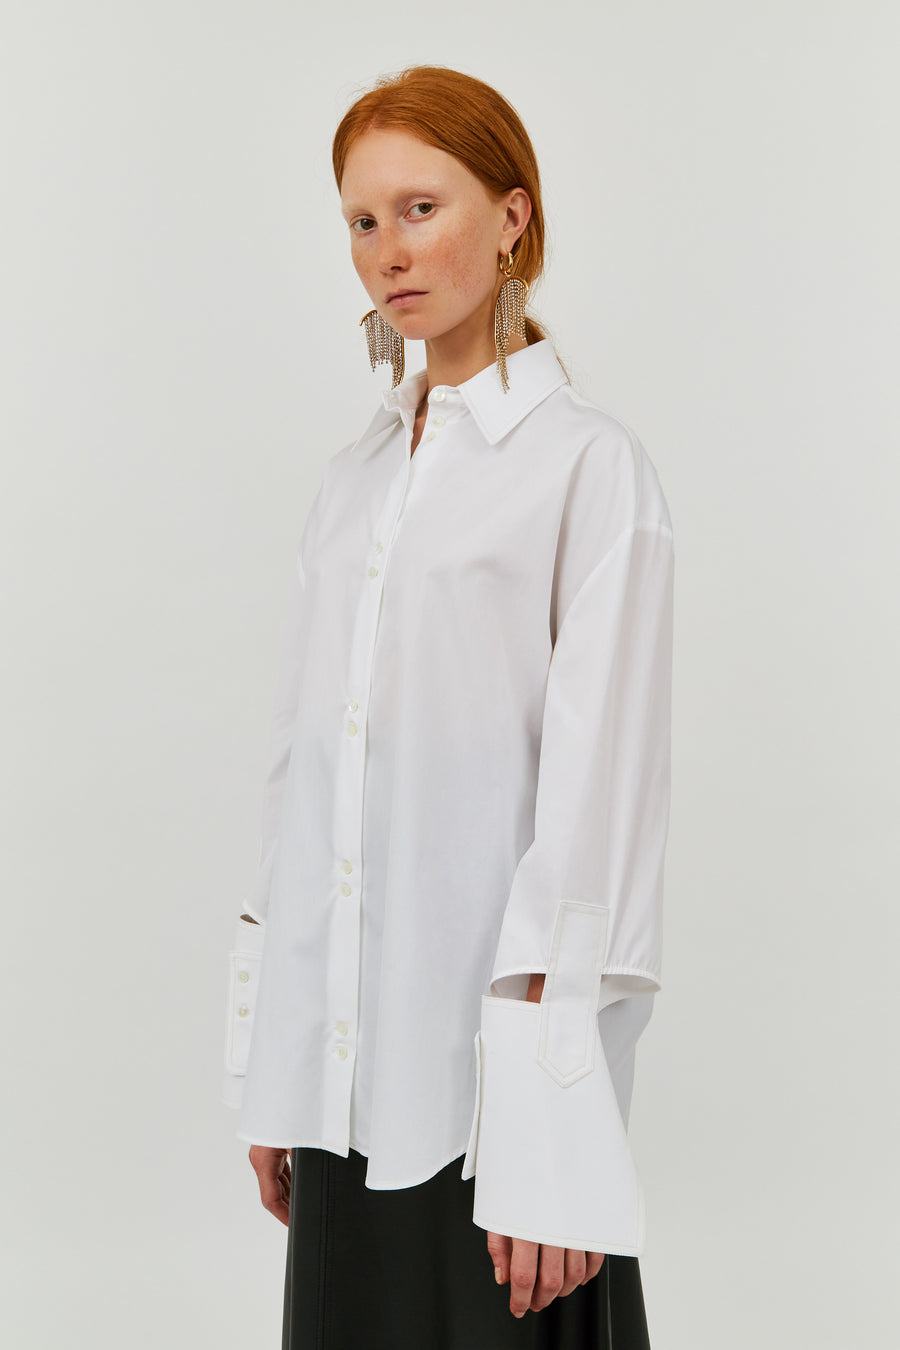 WHITE EVELYN CLASSIC SHIRT WITH ABSTRACT CUFF